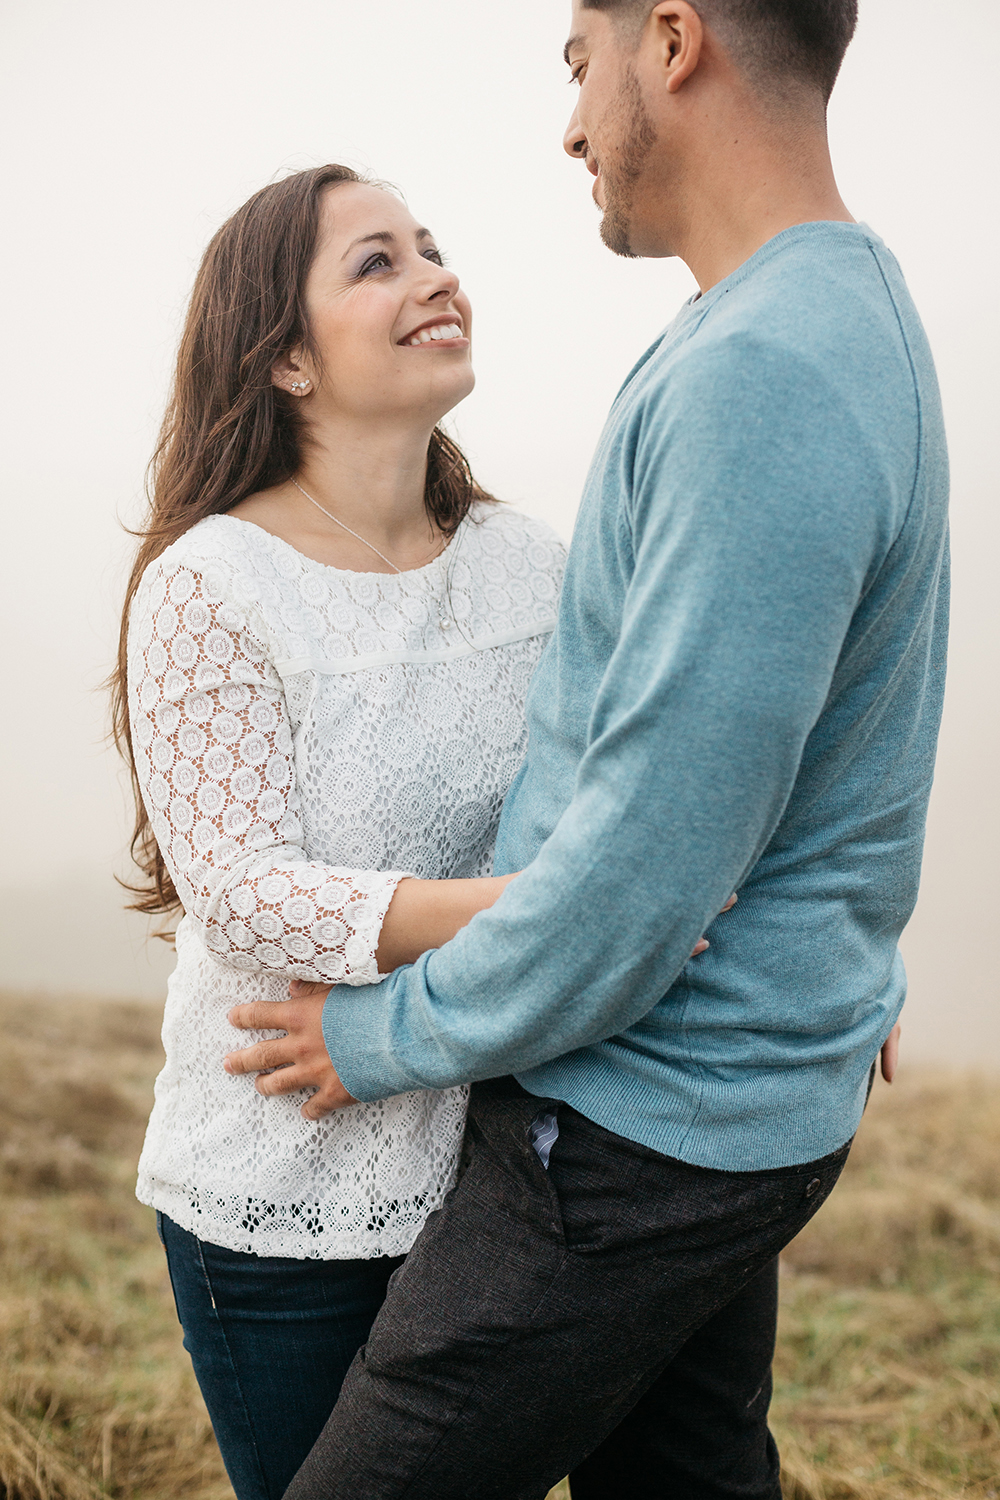 engagement-session-at-mount-tam-04.jpg